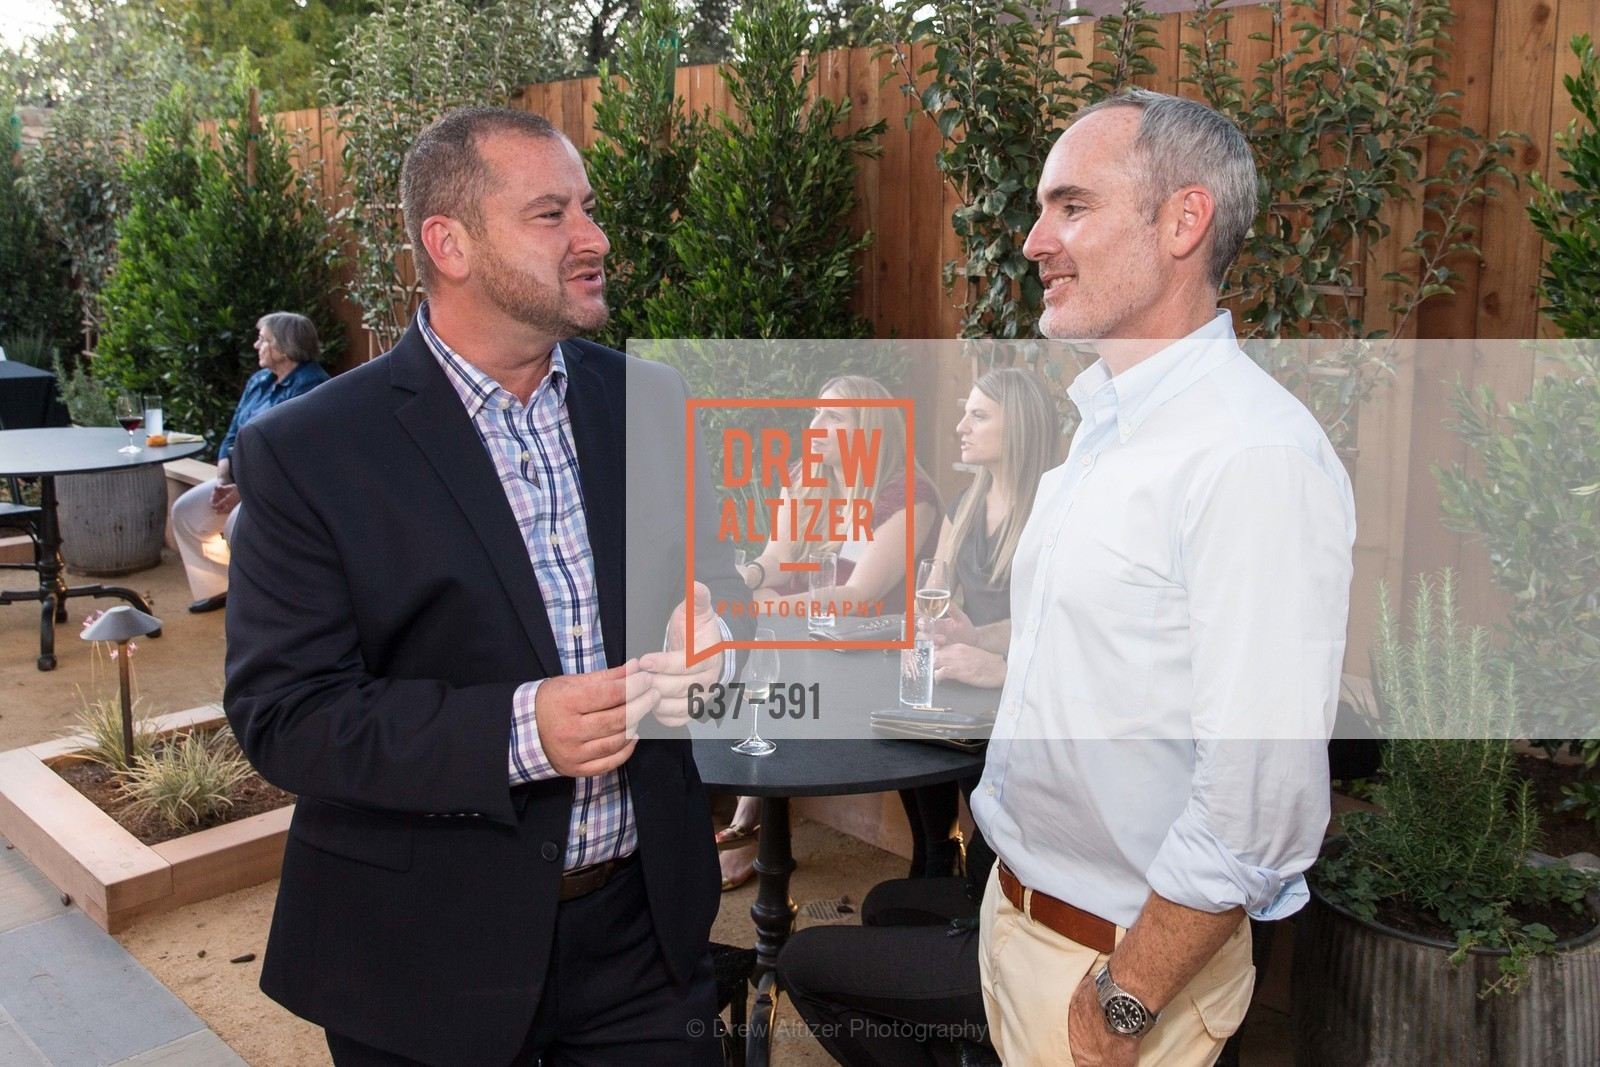 Jonathan Waugh, Neil Lick, CHUCK WILLIAMS Birthday Celebration, US, October 2nd, 2014,Drew Altizer, Drew Altizer Photography, full-service agency, private events, San Francisco photographer, photographer california